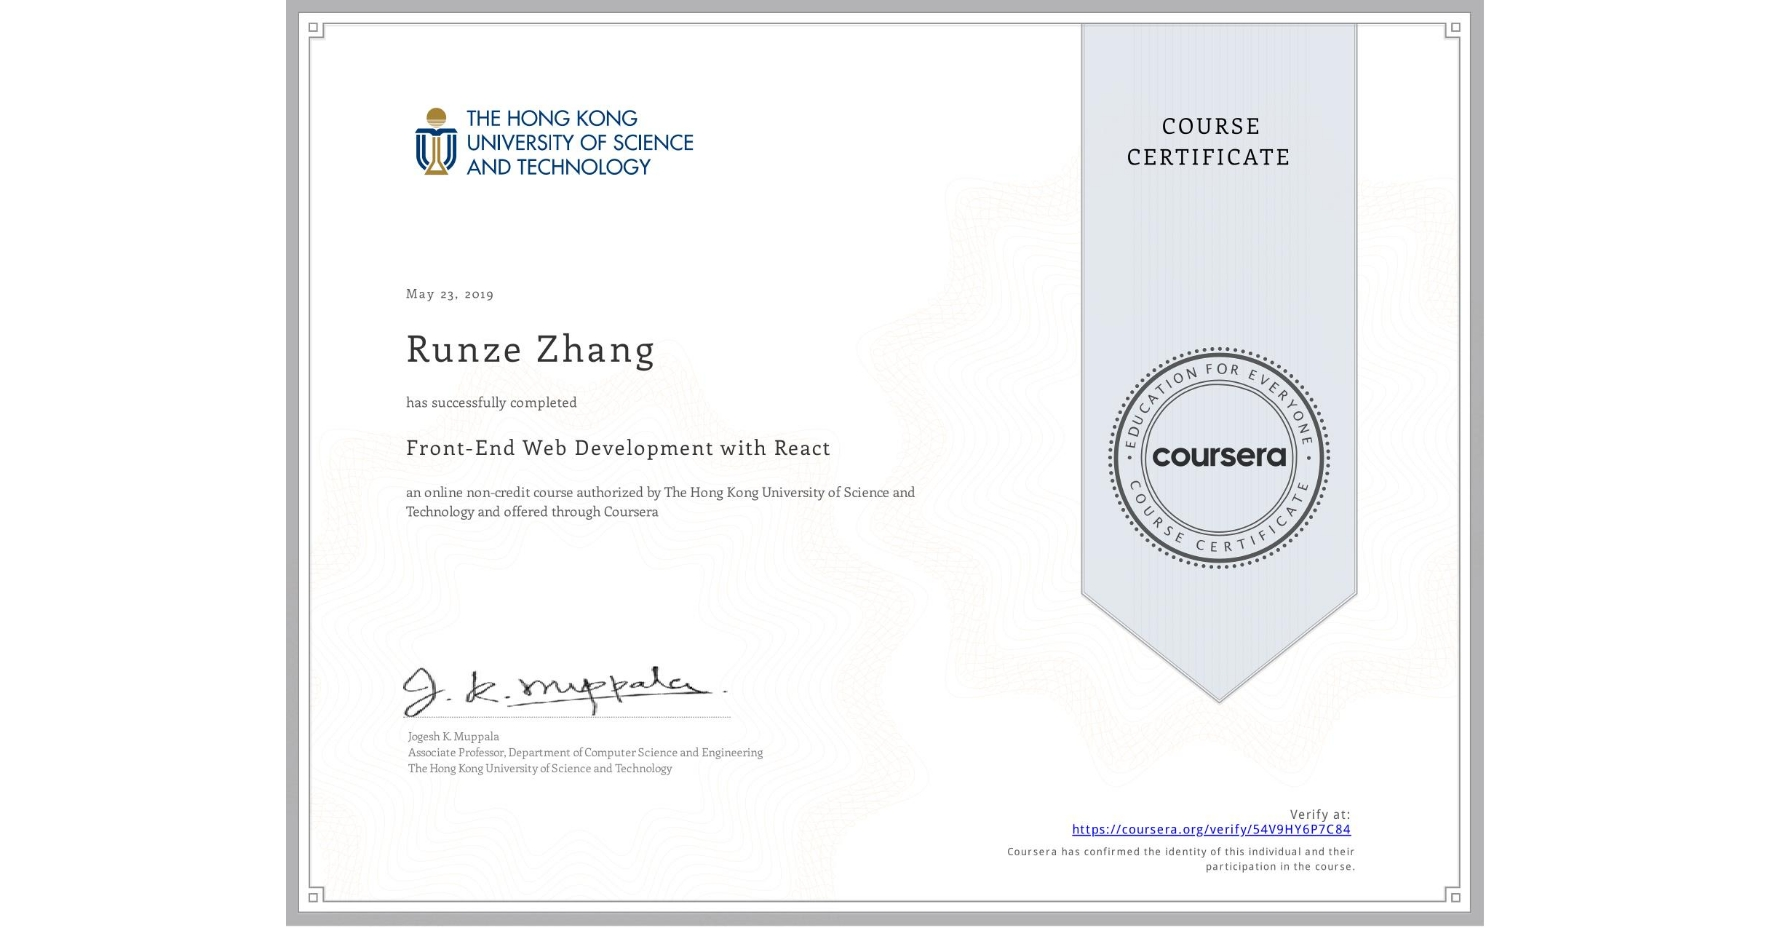 View certificate for Runze Zhang, Front-End Web Development with React, an online non-credit course authorized by The Hong Kong University of Science and Technology and offered through Coursera